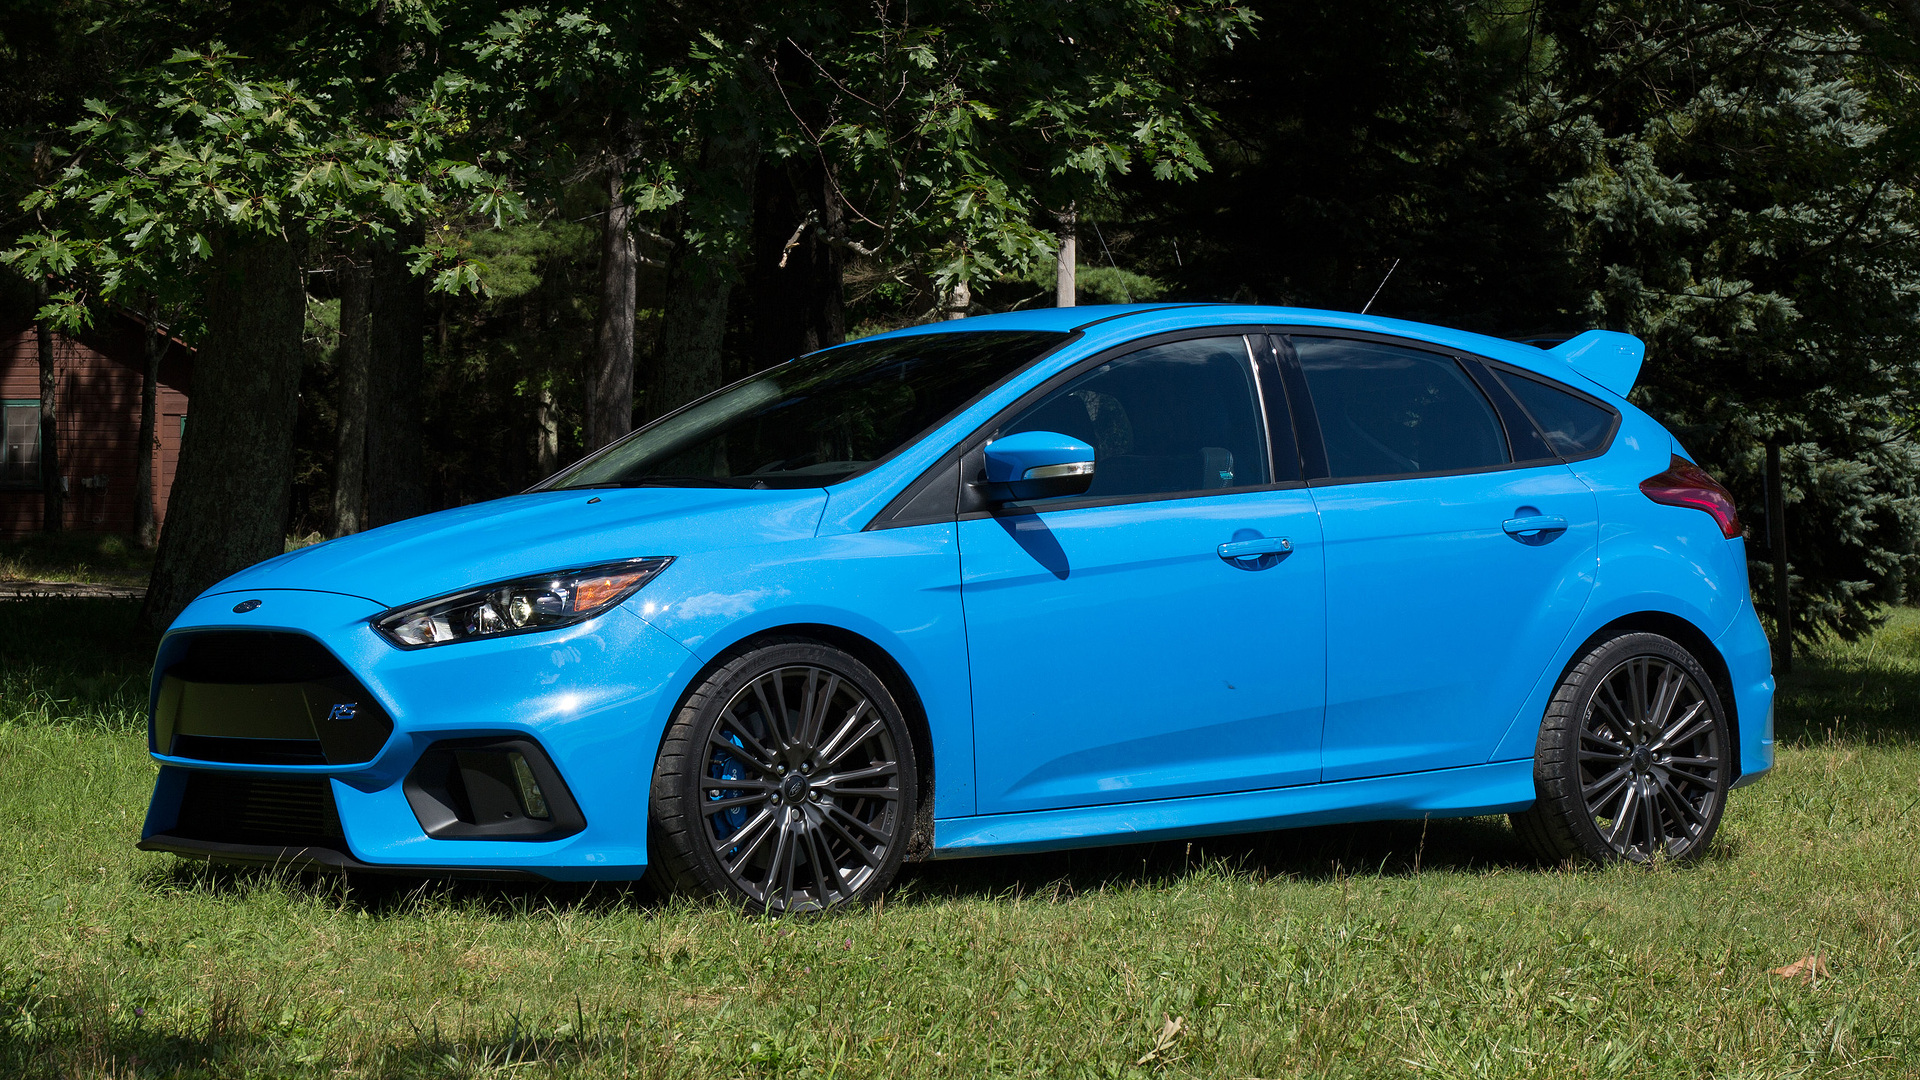 Ford focus rs 500 precio user manuals array ford moving 500 units of focus rs a month mostly in california rh motor1 publicscrutiny Images